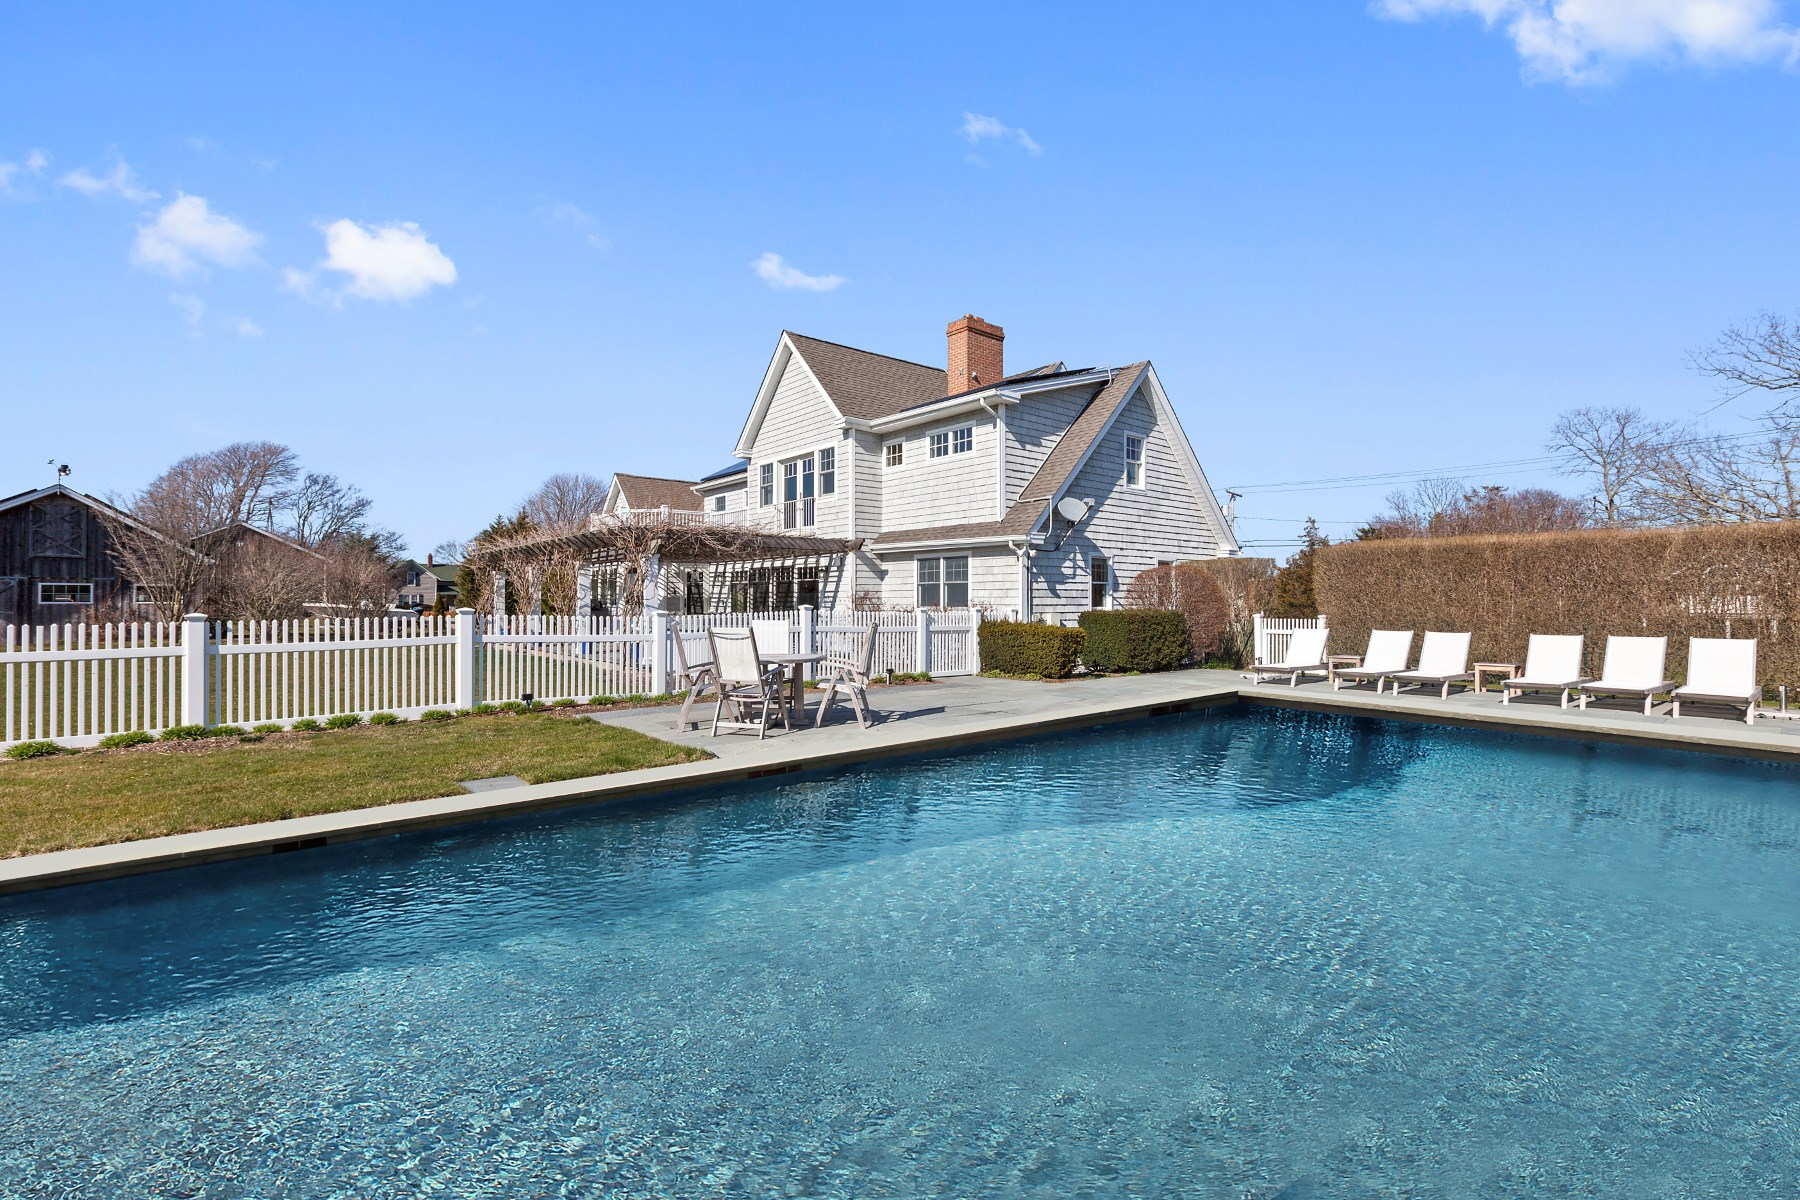 Single Family Home for Rent at Farm Field Views- Peaceful & Central 124 Blank Lane Water Mill, New York 11976 United States